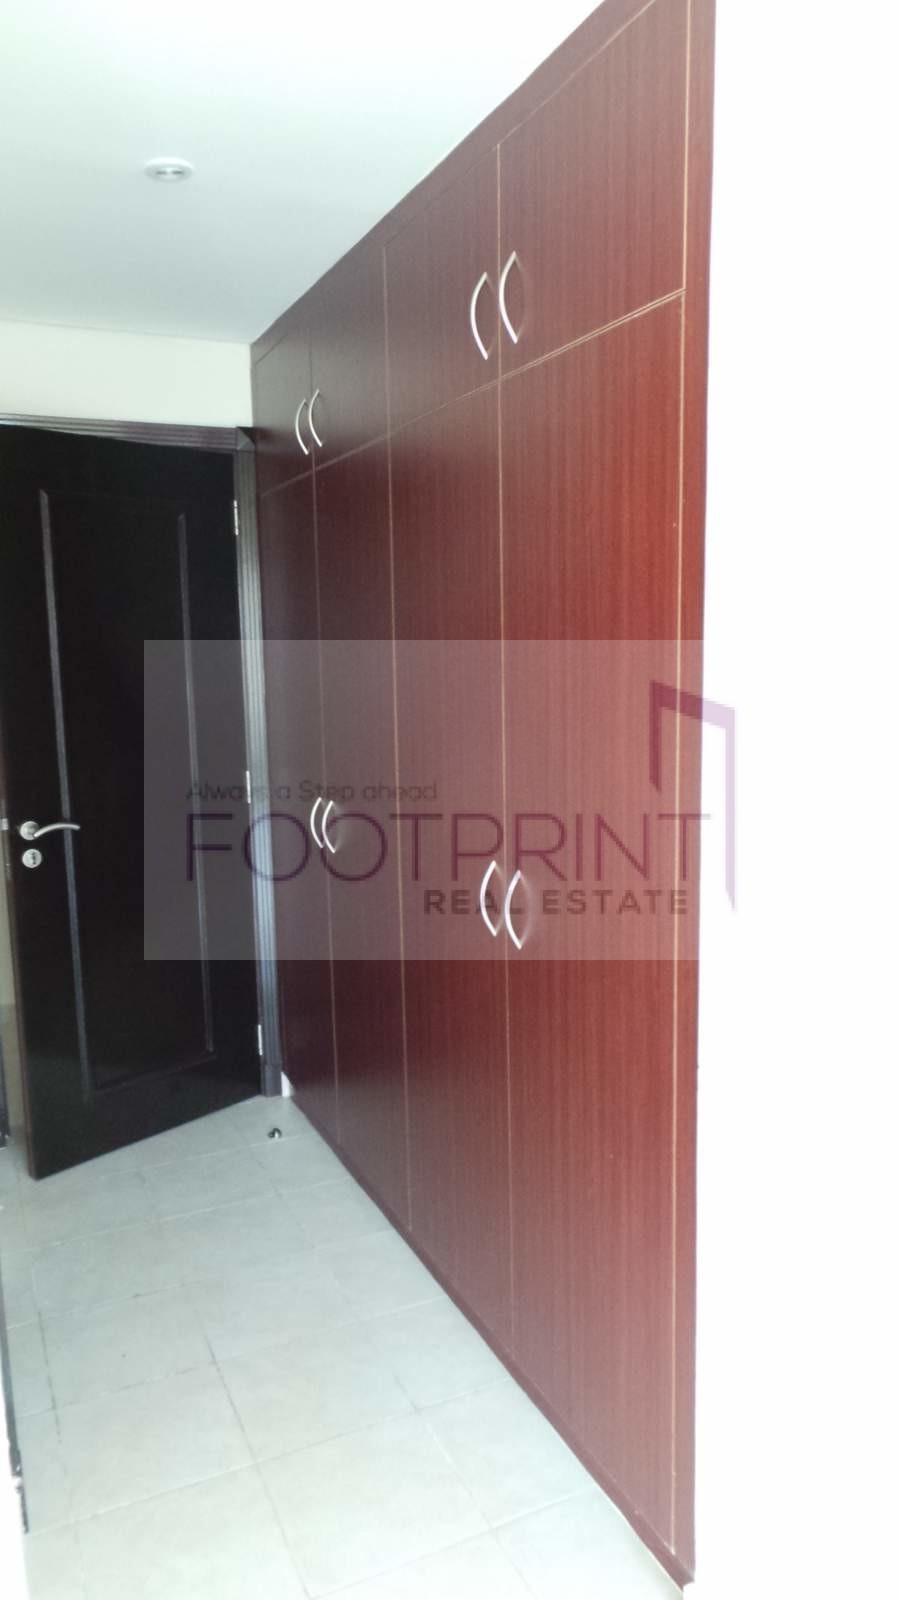 1 BHK With expected ROI 8.2 % EXPO Route